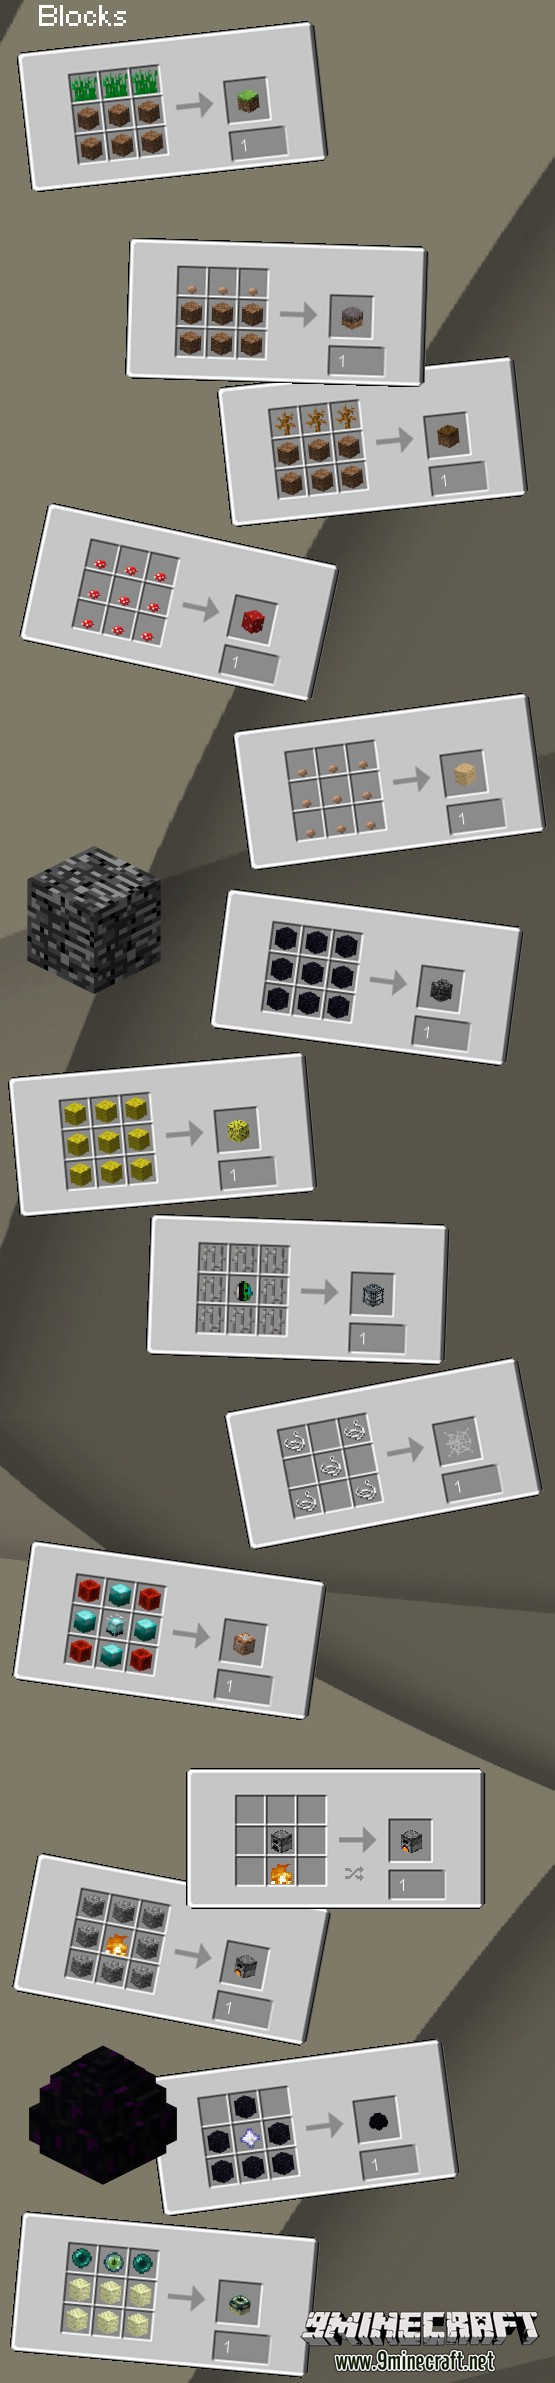 1484047110_689_uncrafted-mod-1-11-21-10-2-for-minecraft Uncrafted Mod 1.11.2/1.10.2 for Minecraft